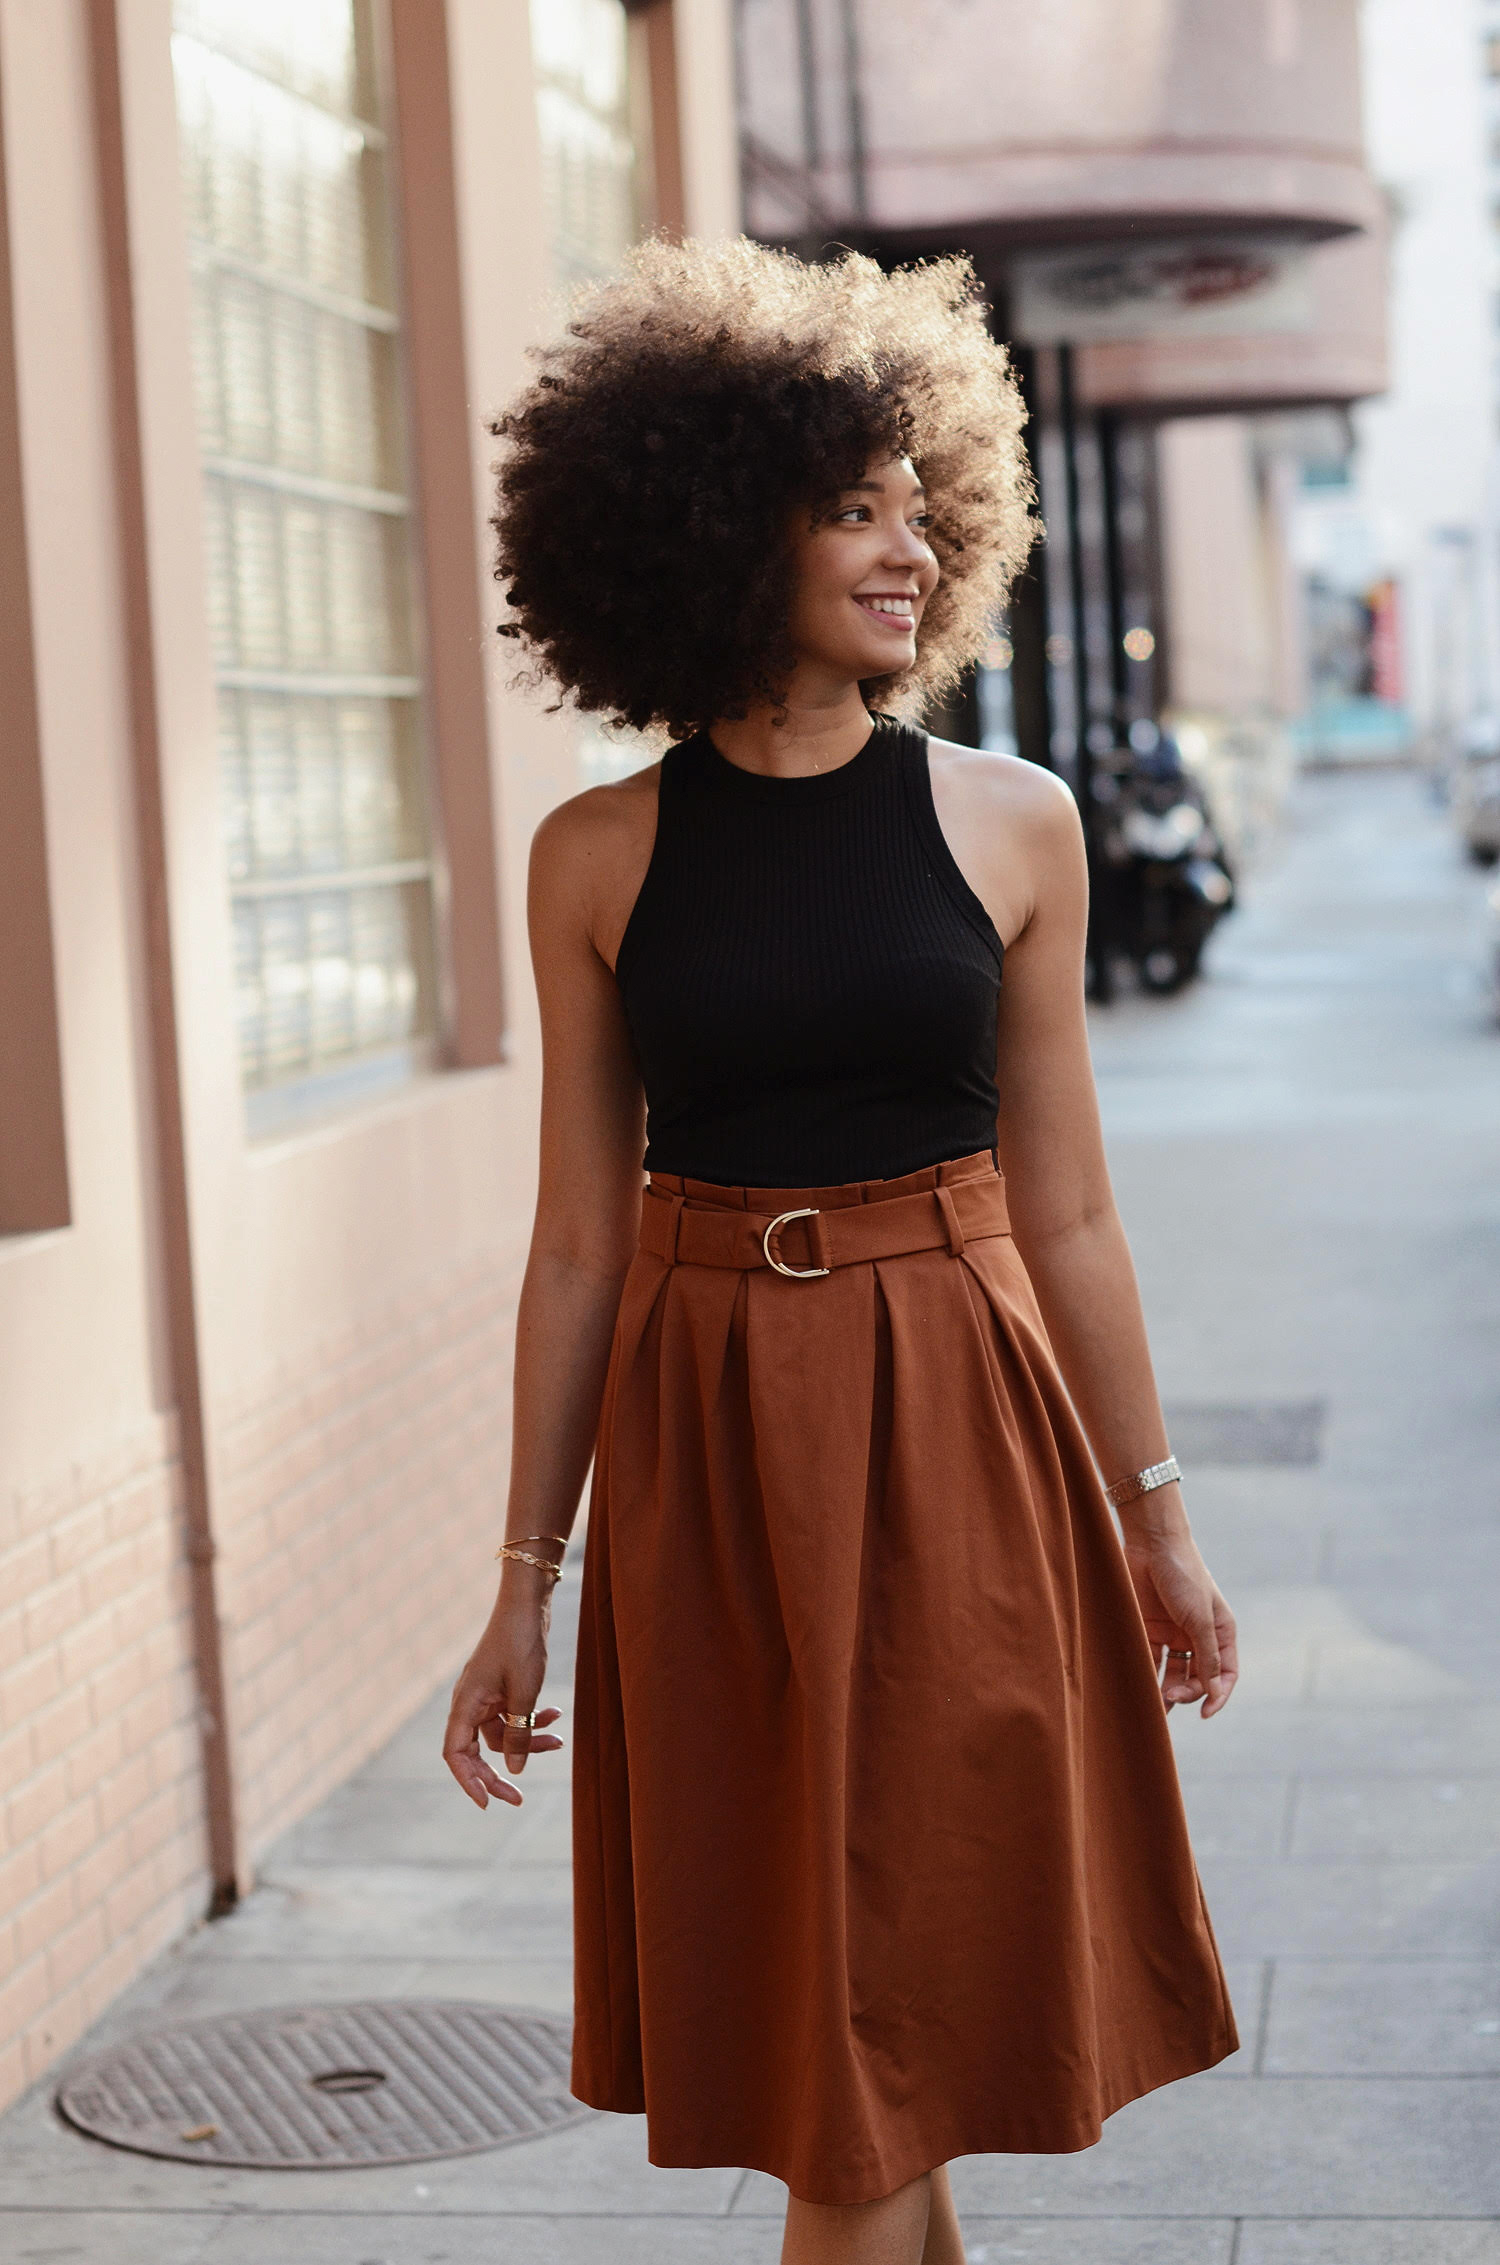 mercredie-blog-mode-geneve-blogger-swiss-suisse-switzerland-geneva-jupe-esprit-paper-bag-skirt-afro-hair-natural